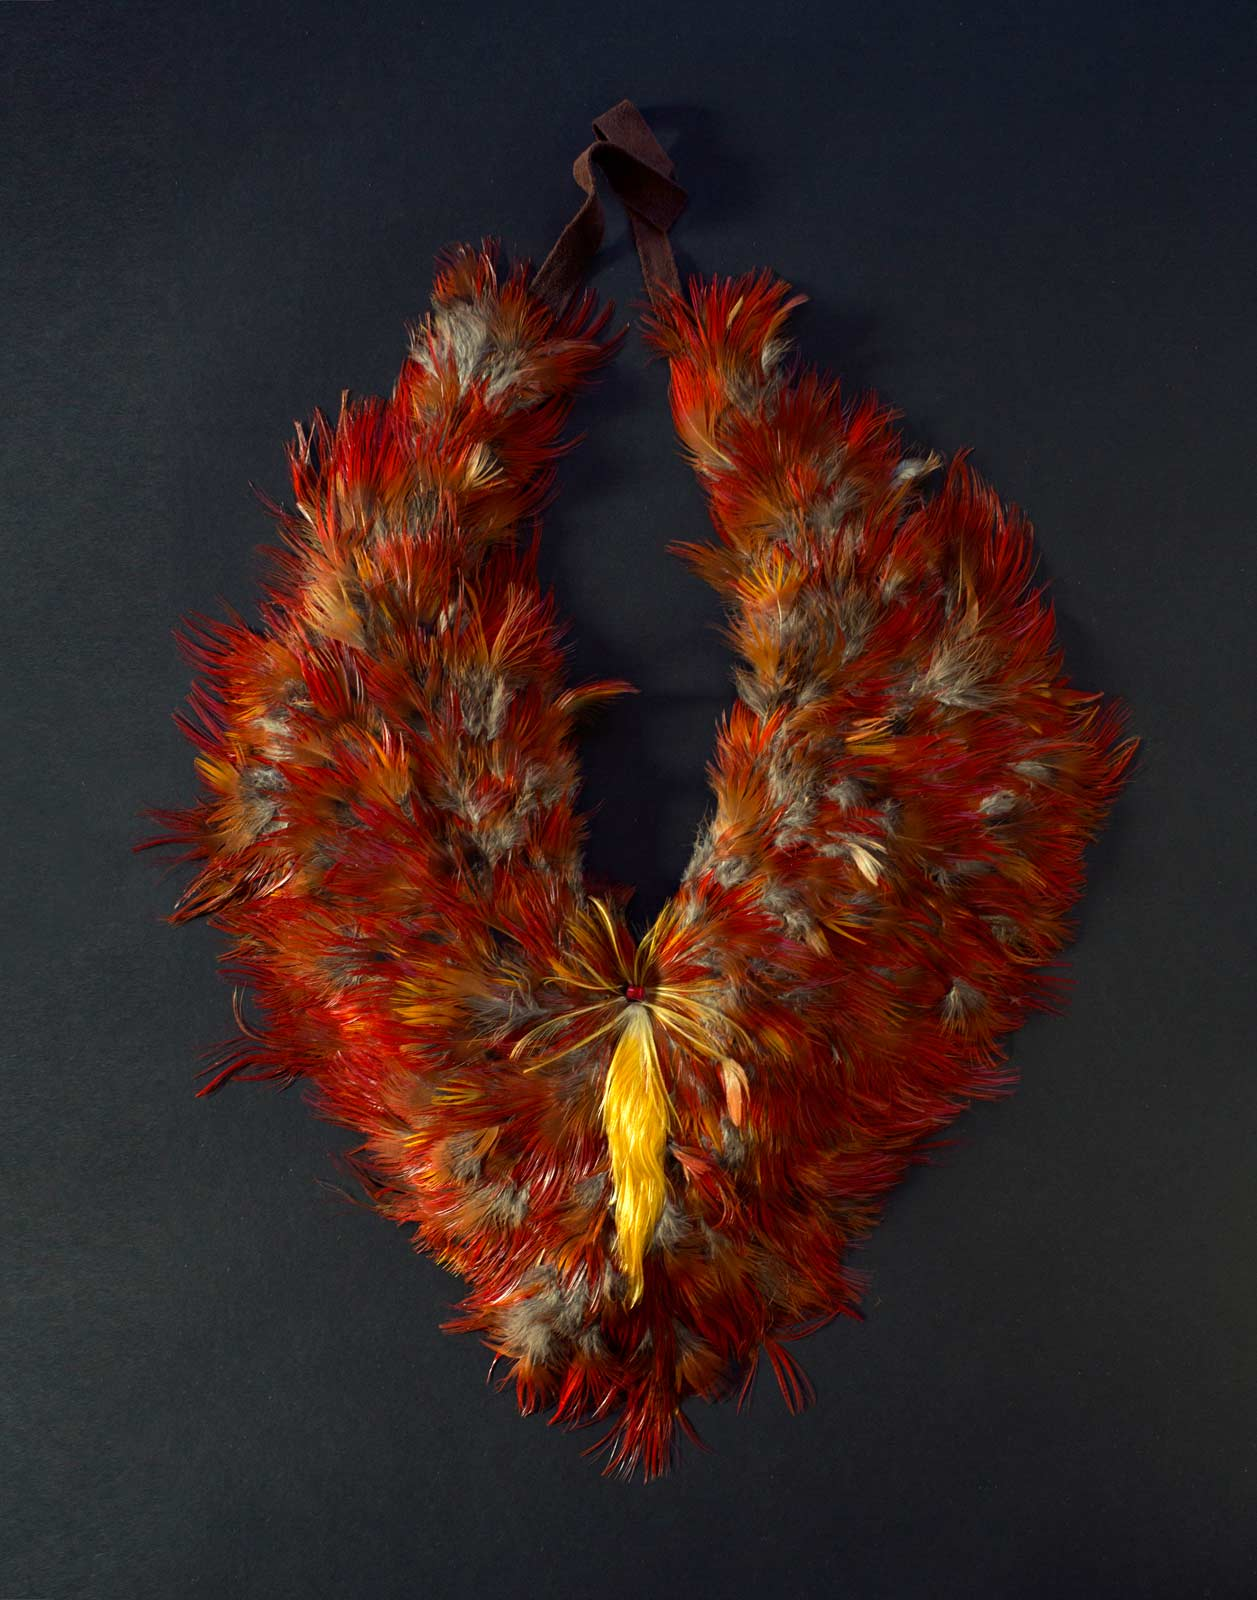 #55/14 of Golden pheasant feathers, 2014. Photograph by Faria Raji, courtesy of The Nartonis Project, 2015.